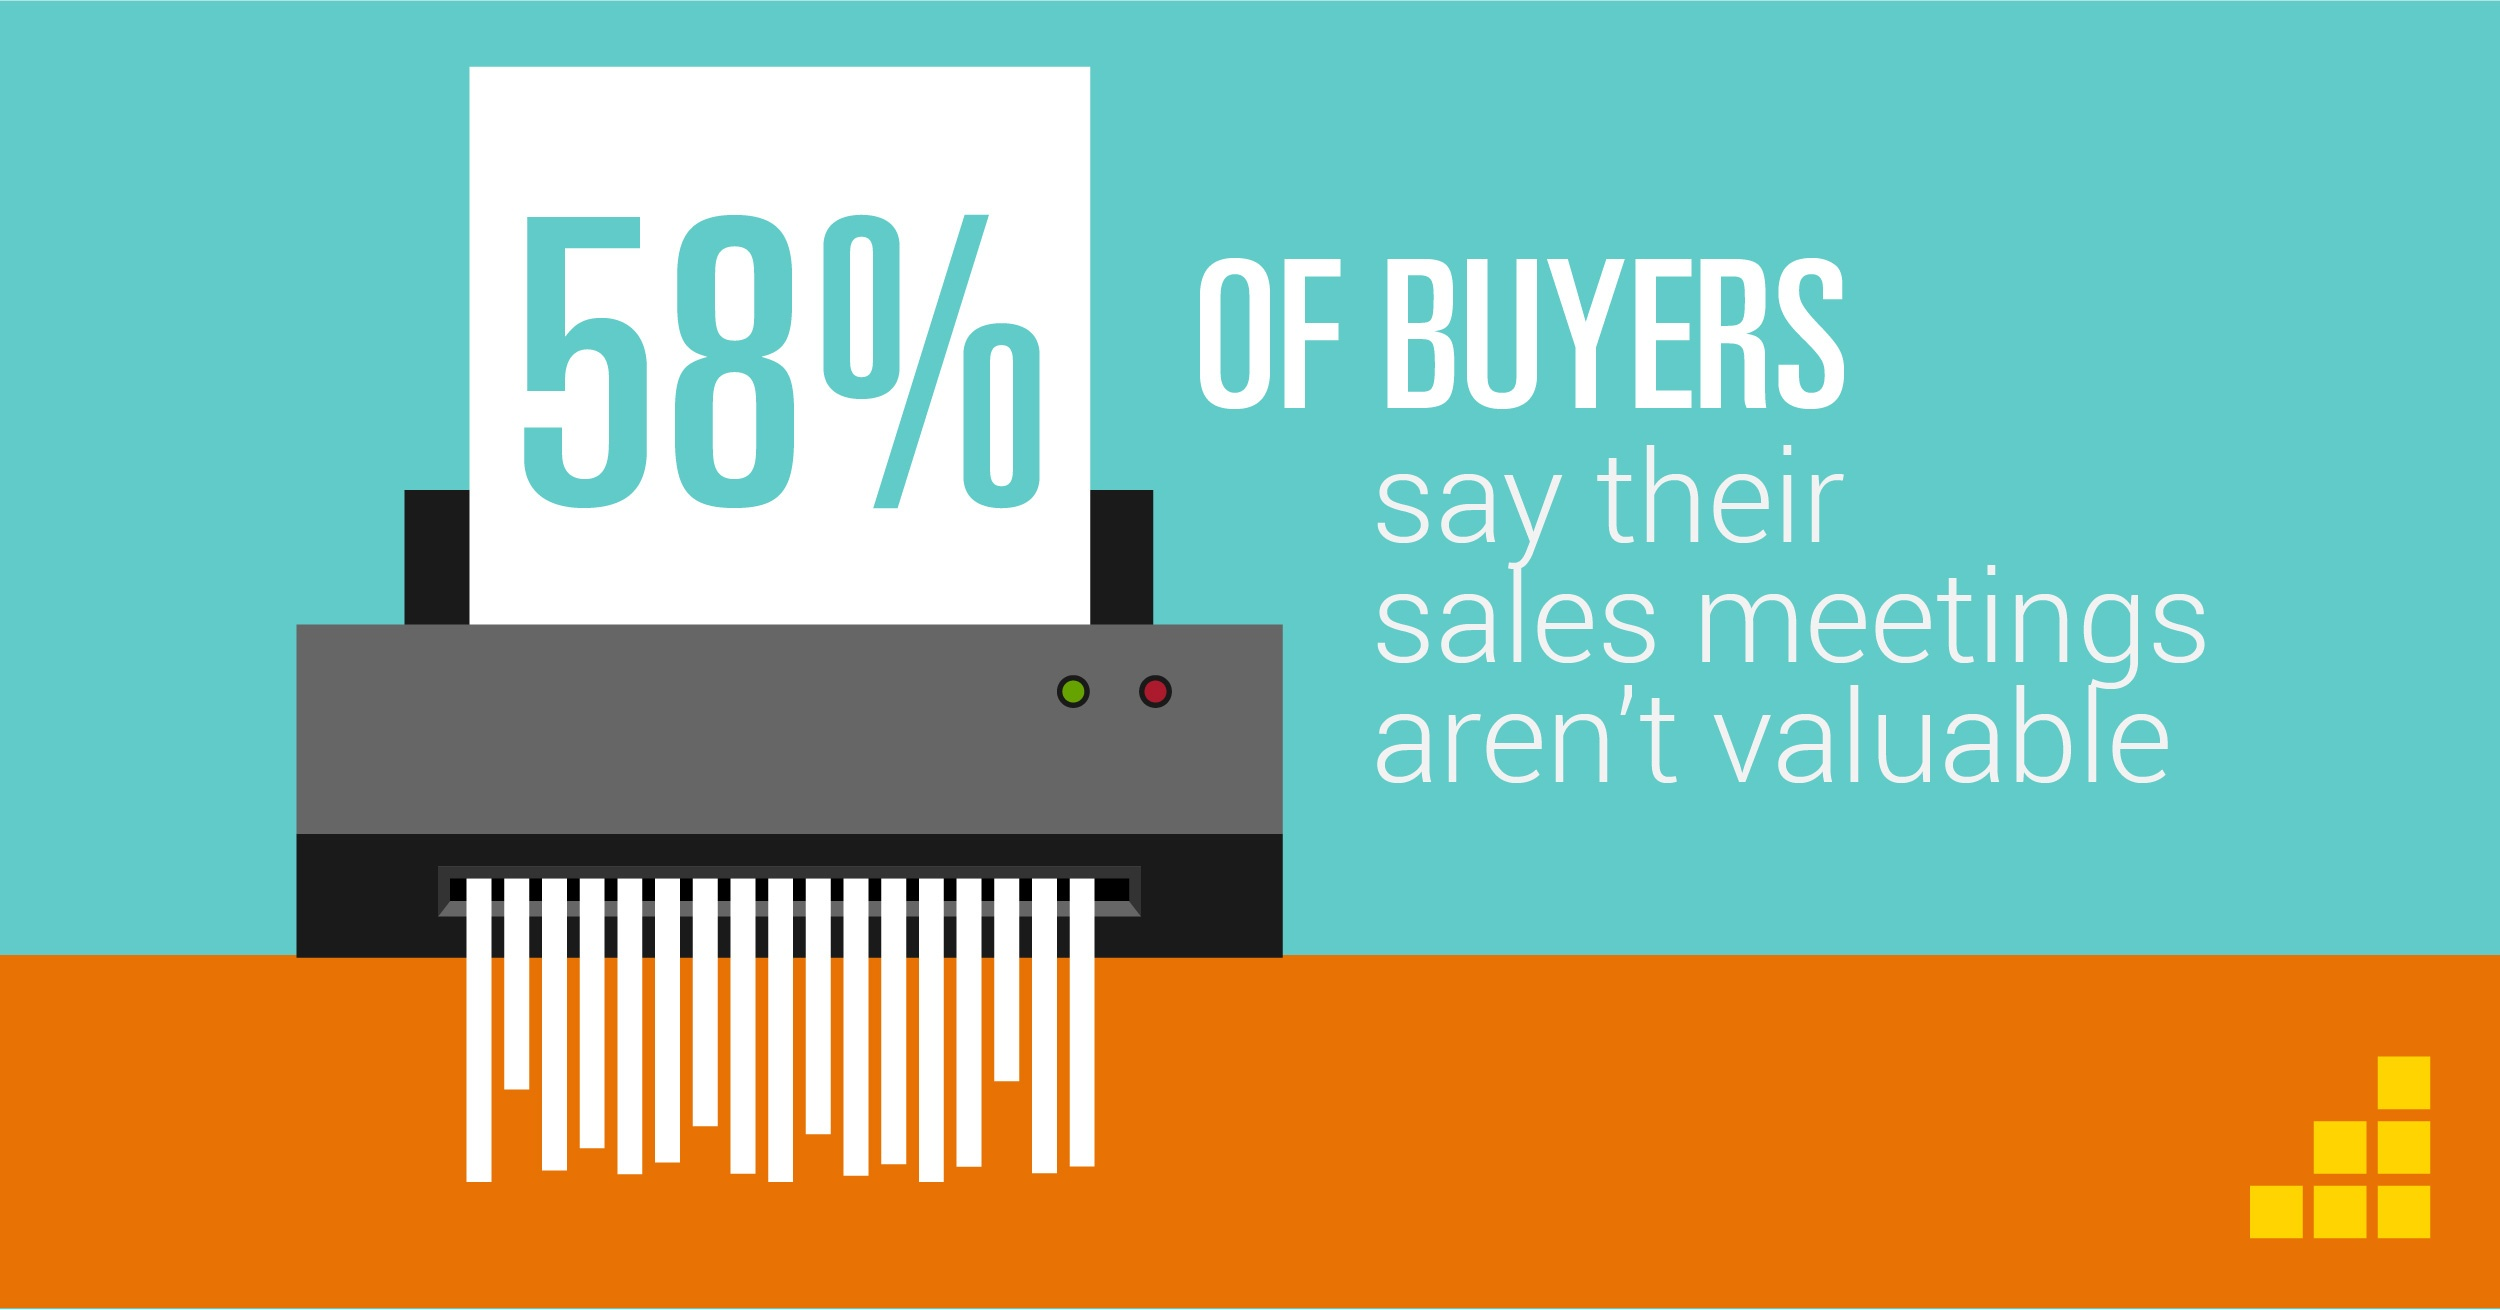 58% of buyers say their sales meetings aren't valuable - sales productivity stat